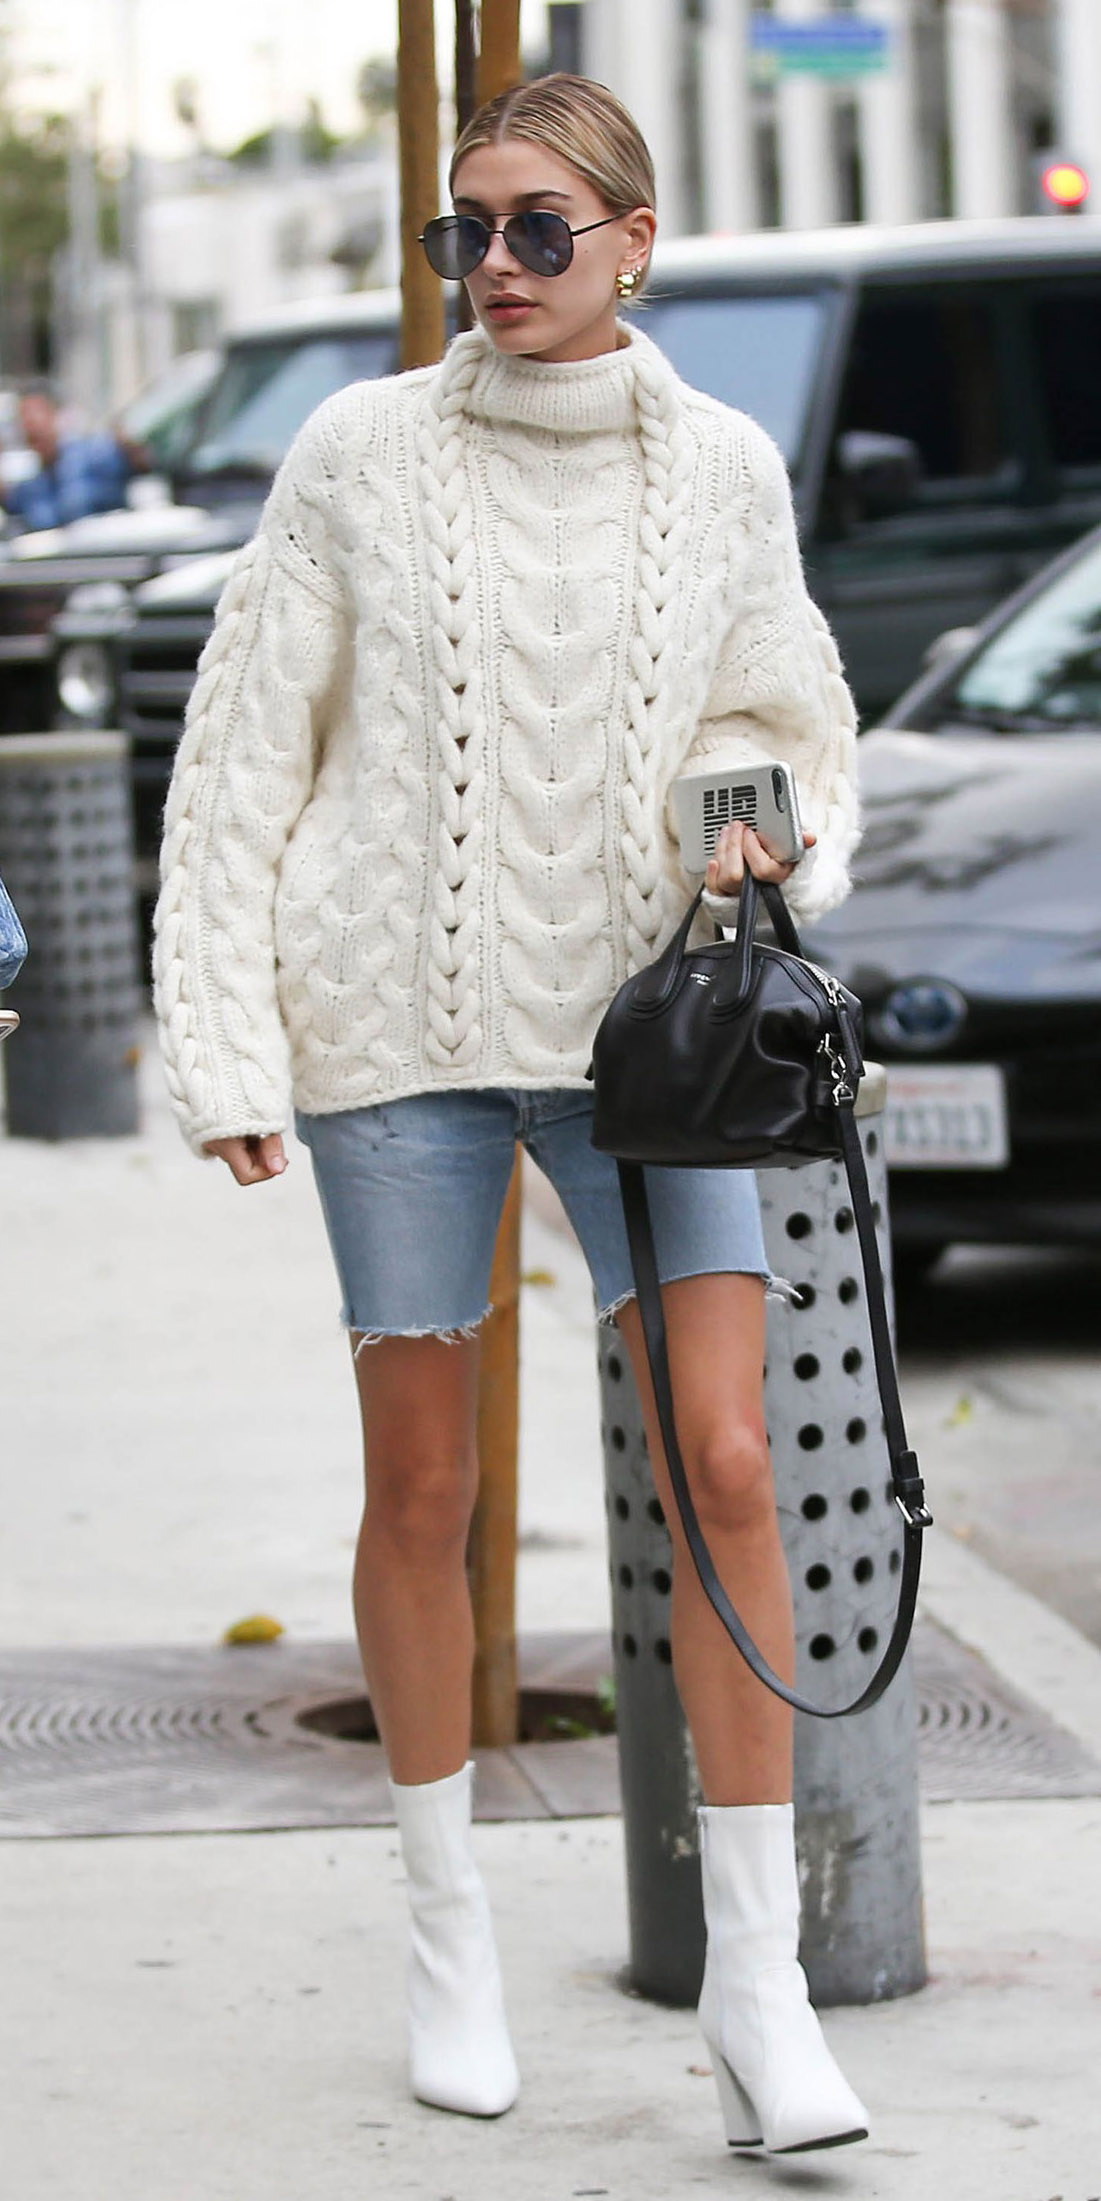 blue-light-shorts-denim-white-sweater-blonde-bun-studs-sun-black-bag-white-shoe-booties-haileybaldwin-fall-winter-lunch.jpg